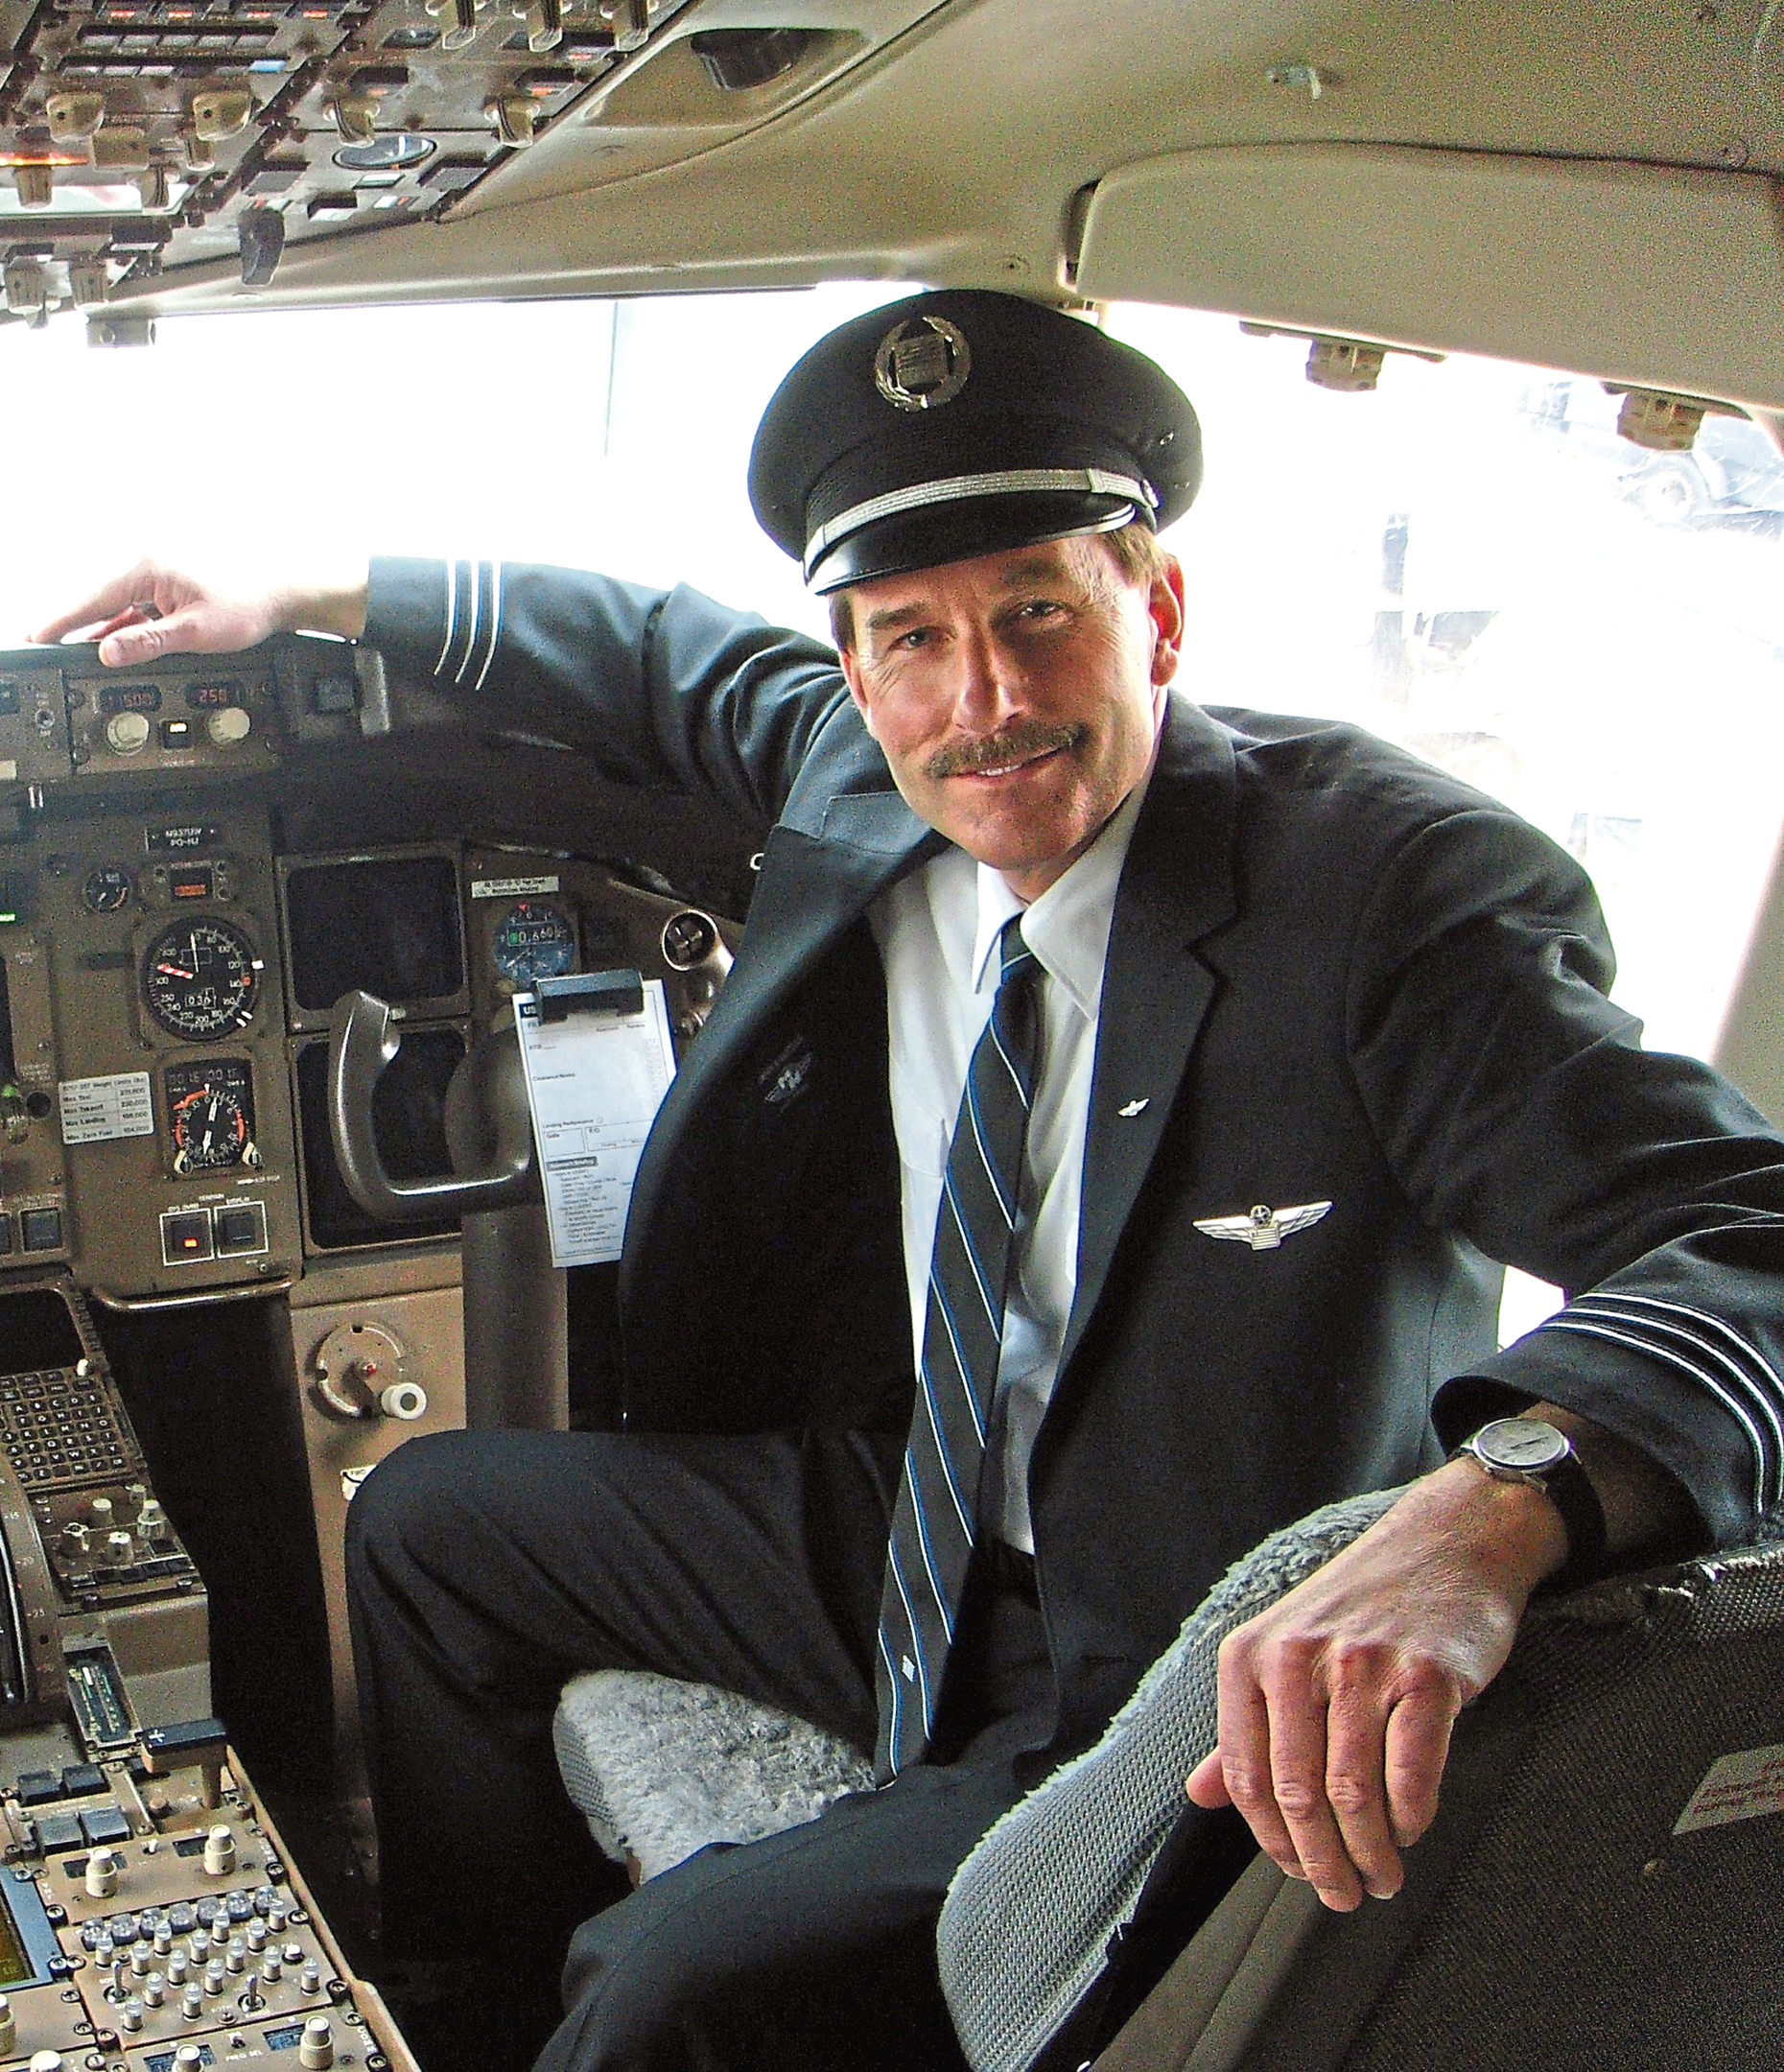 US Airways first officer Jeff Skiles and his co-pilot reacted instantly to ditch their plane in the Hudson River after losing all power